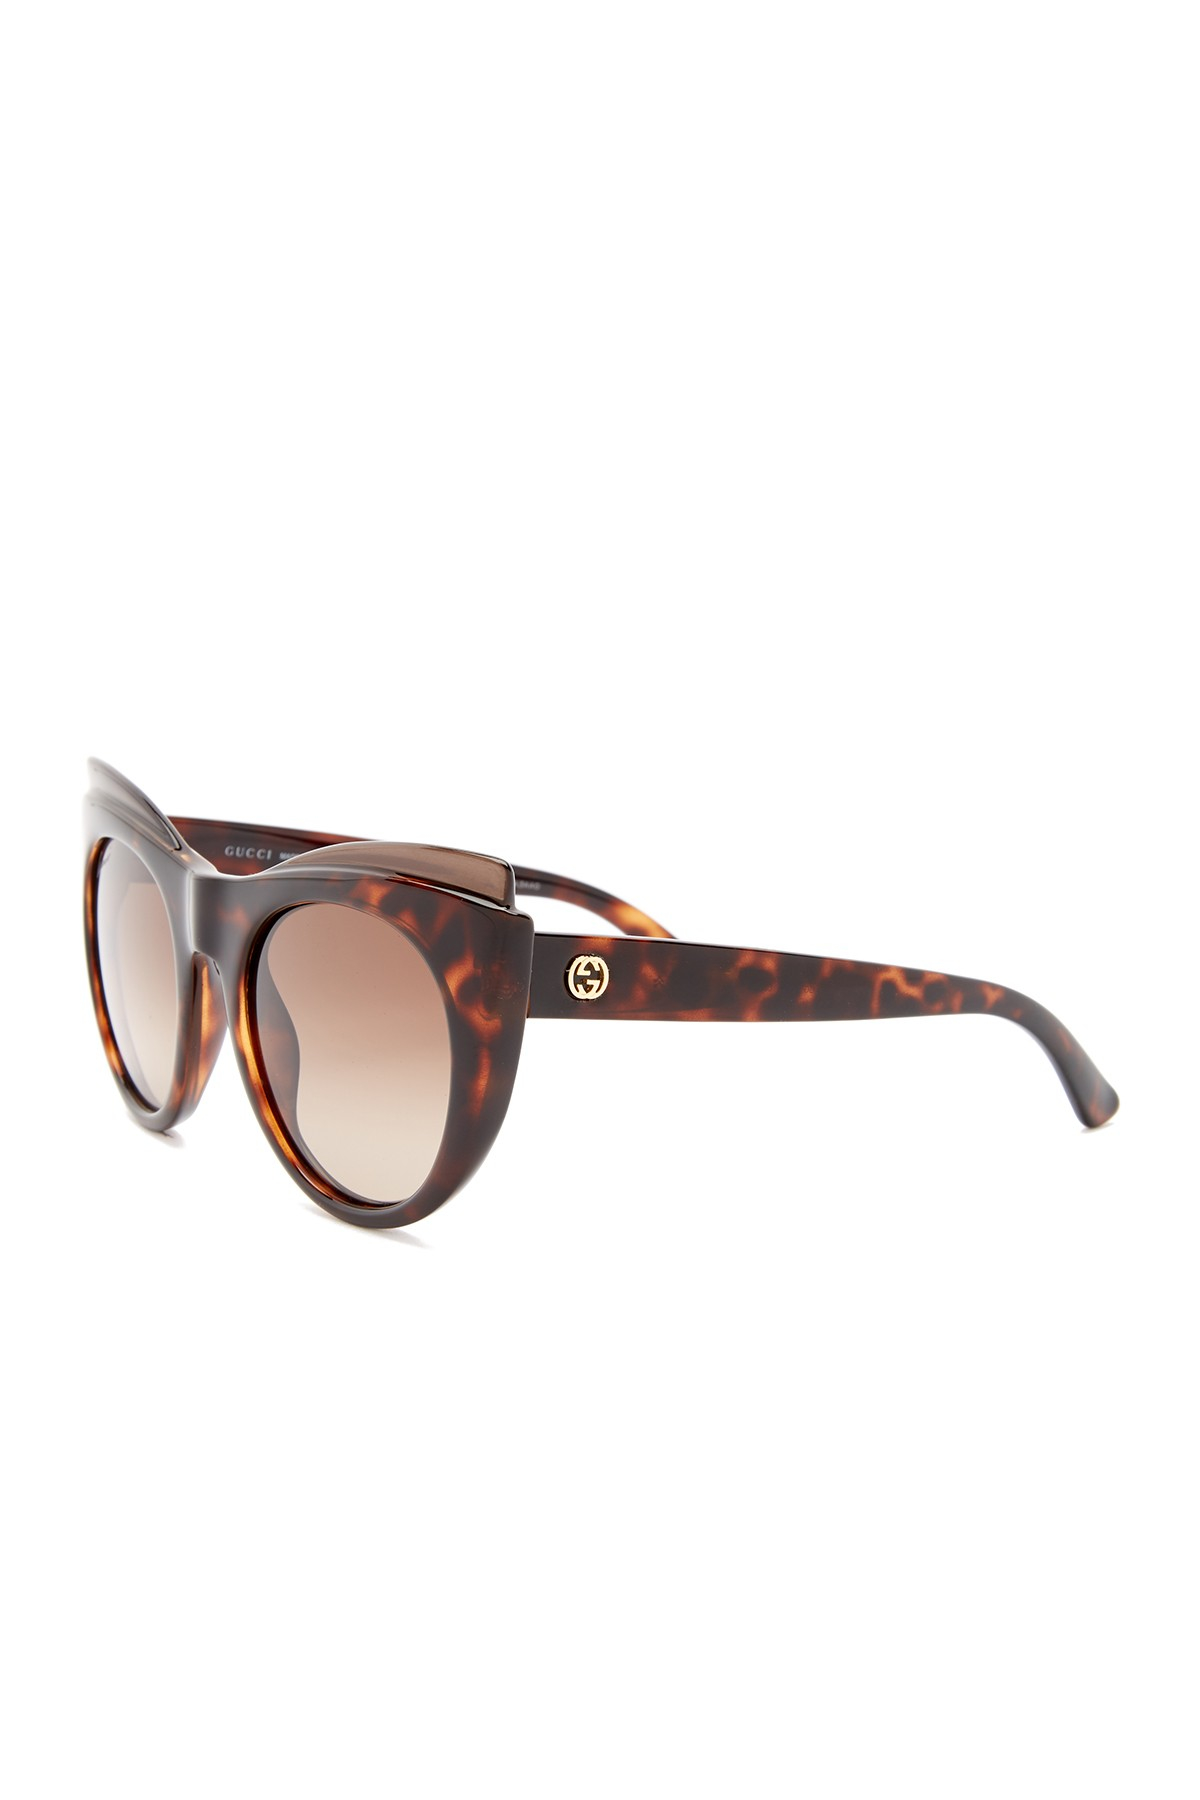 b6b18f9a0f68b Lyst - Gucci Women  39 s Cat Eye Acetate Sunglasses in Brown